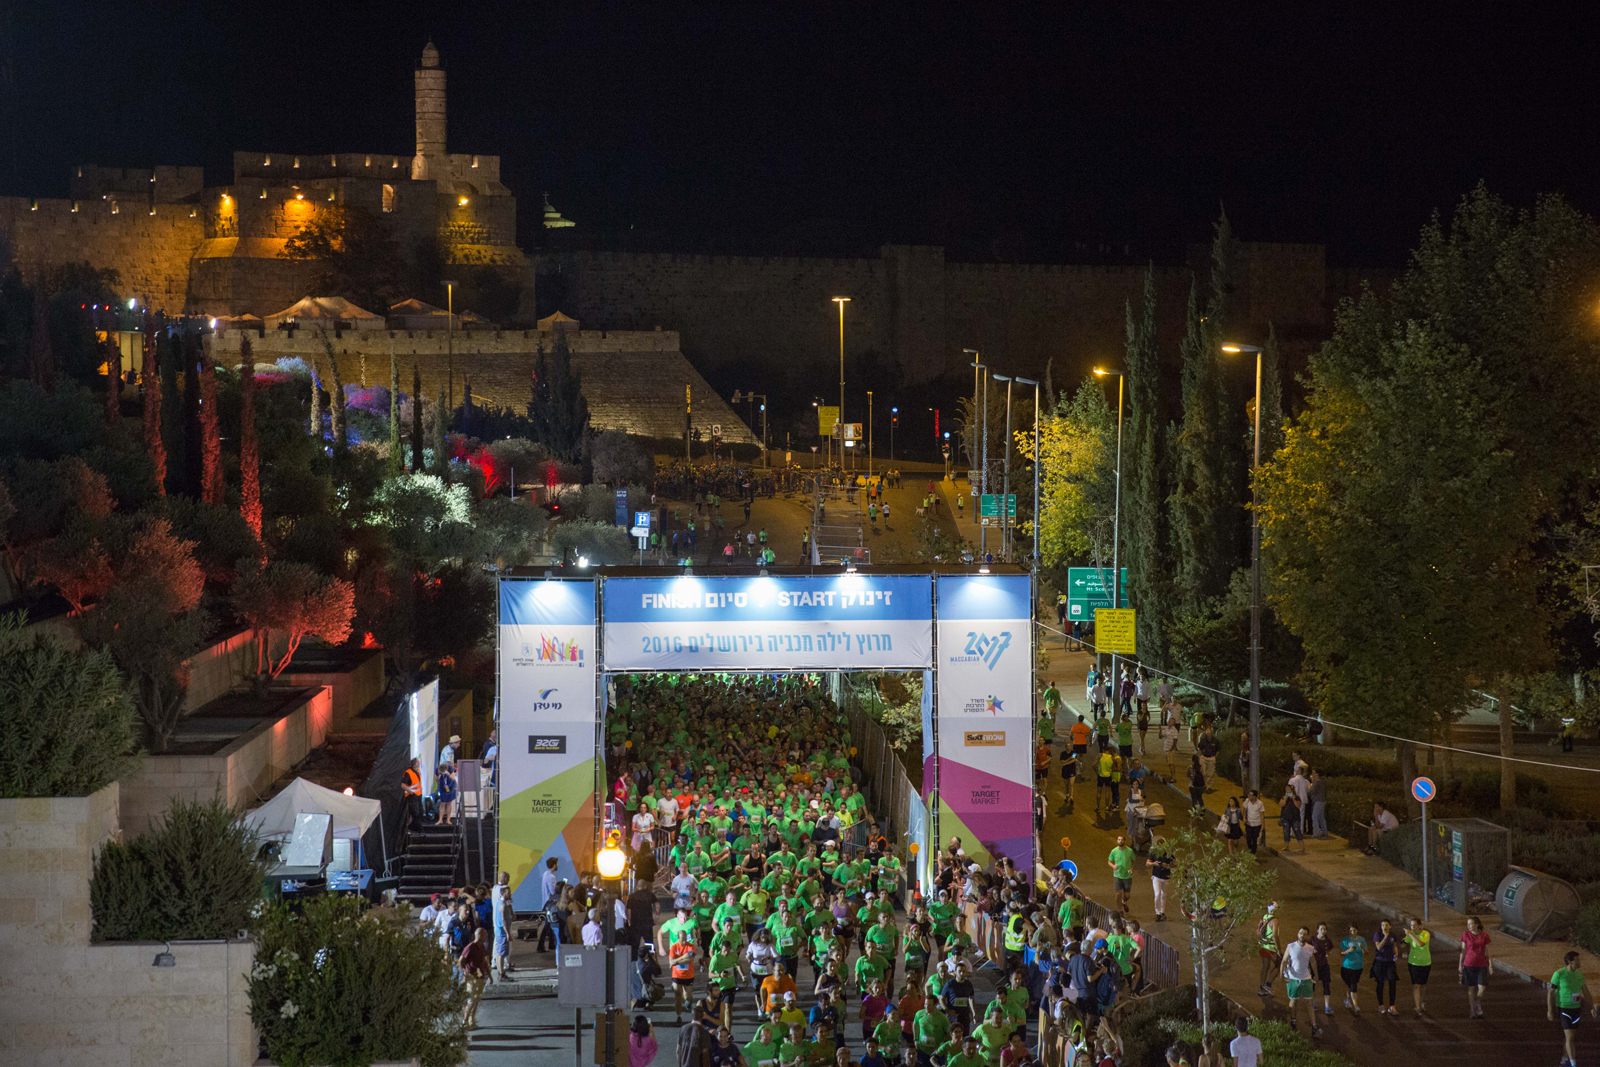 Jerusalem Maccabiah Night Run. Photo by Hadas Parush/Flash90